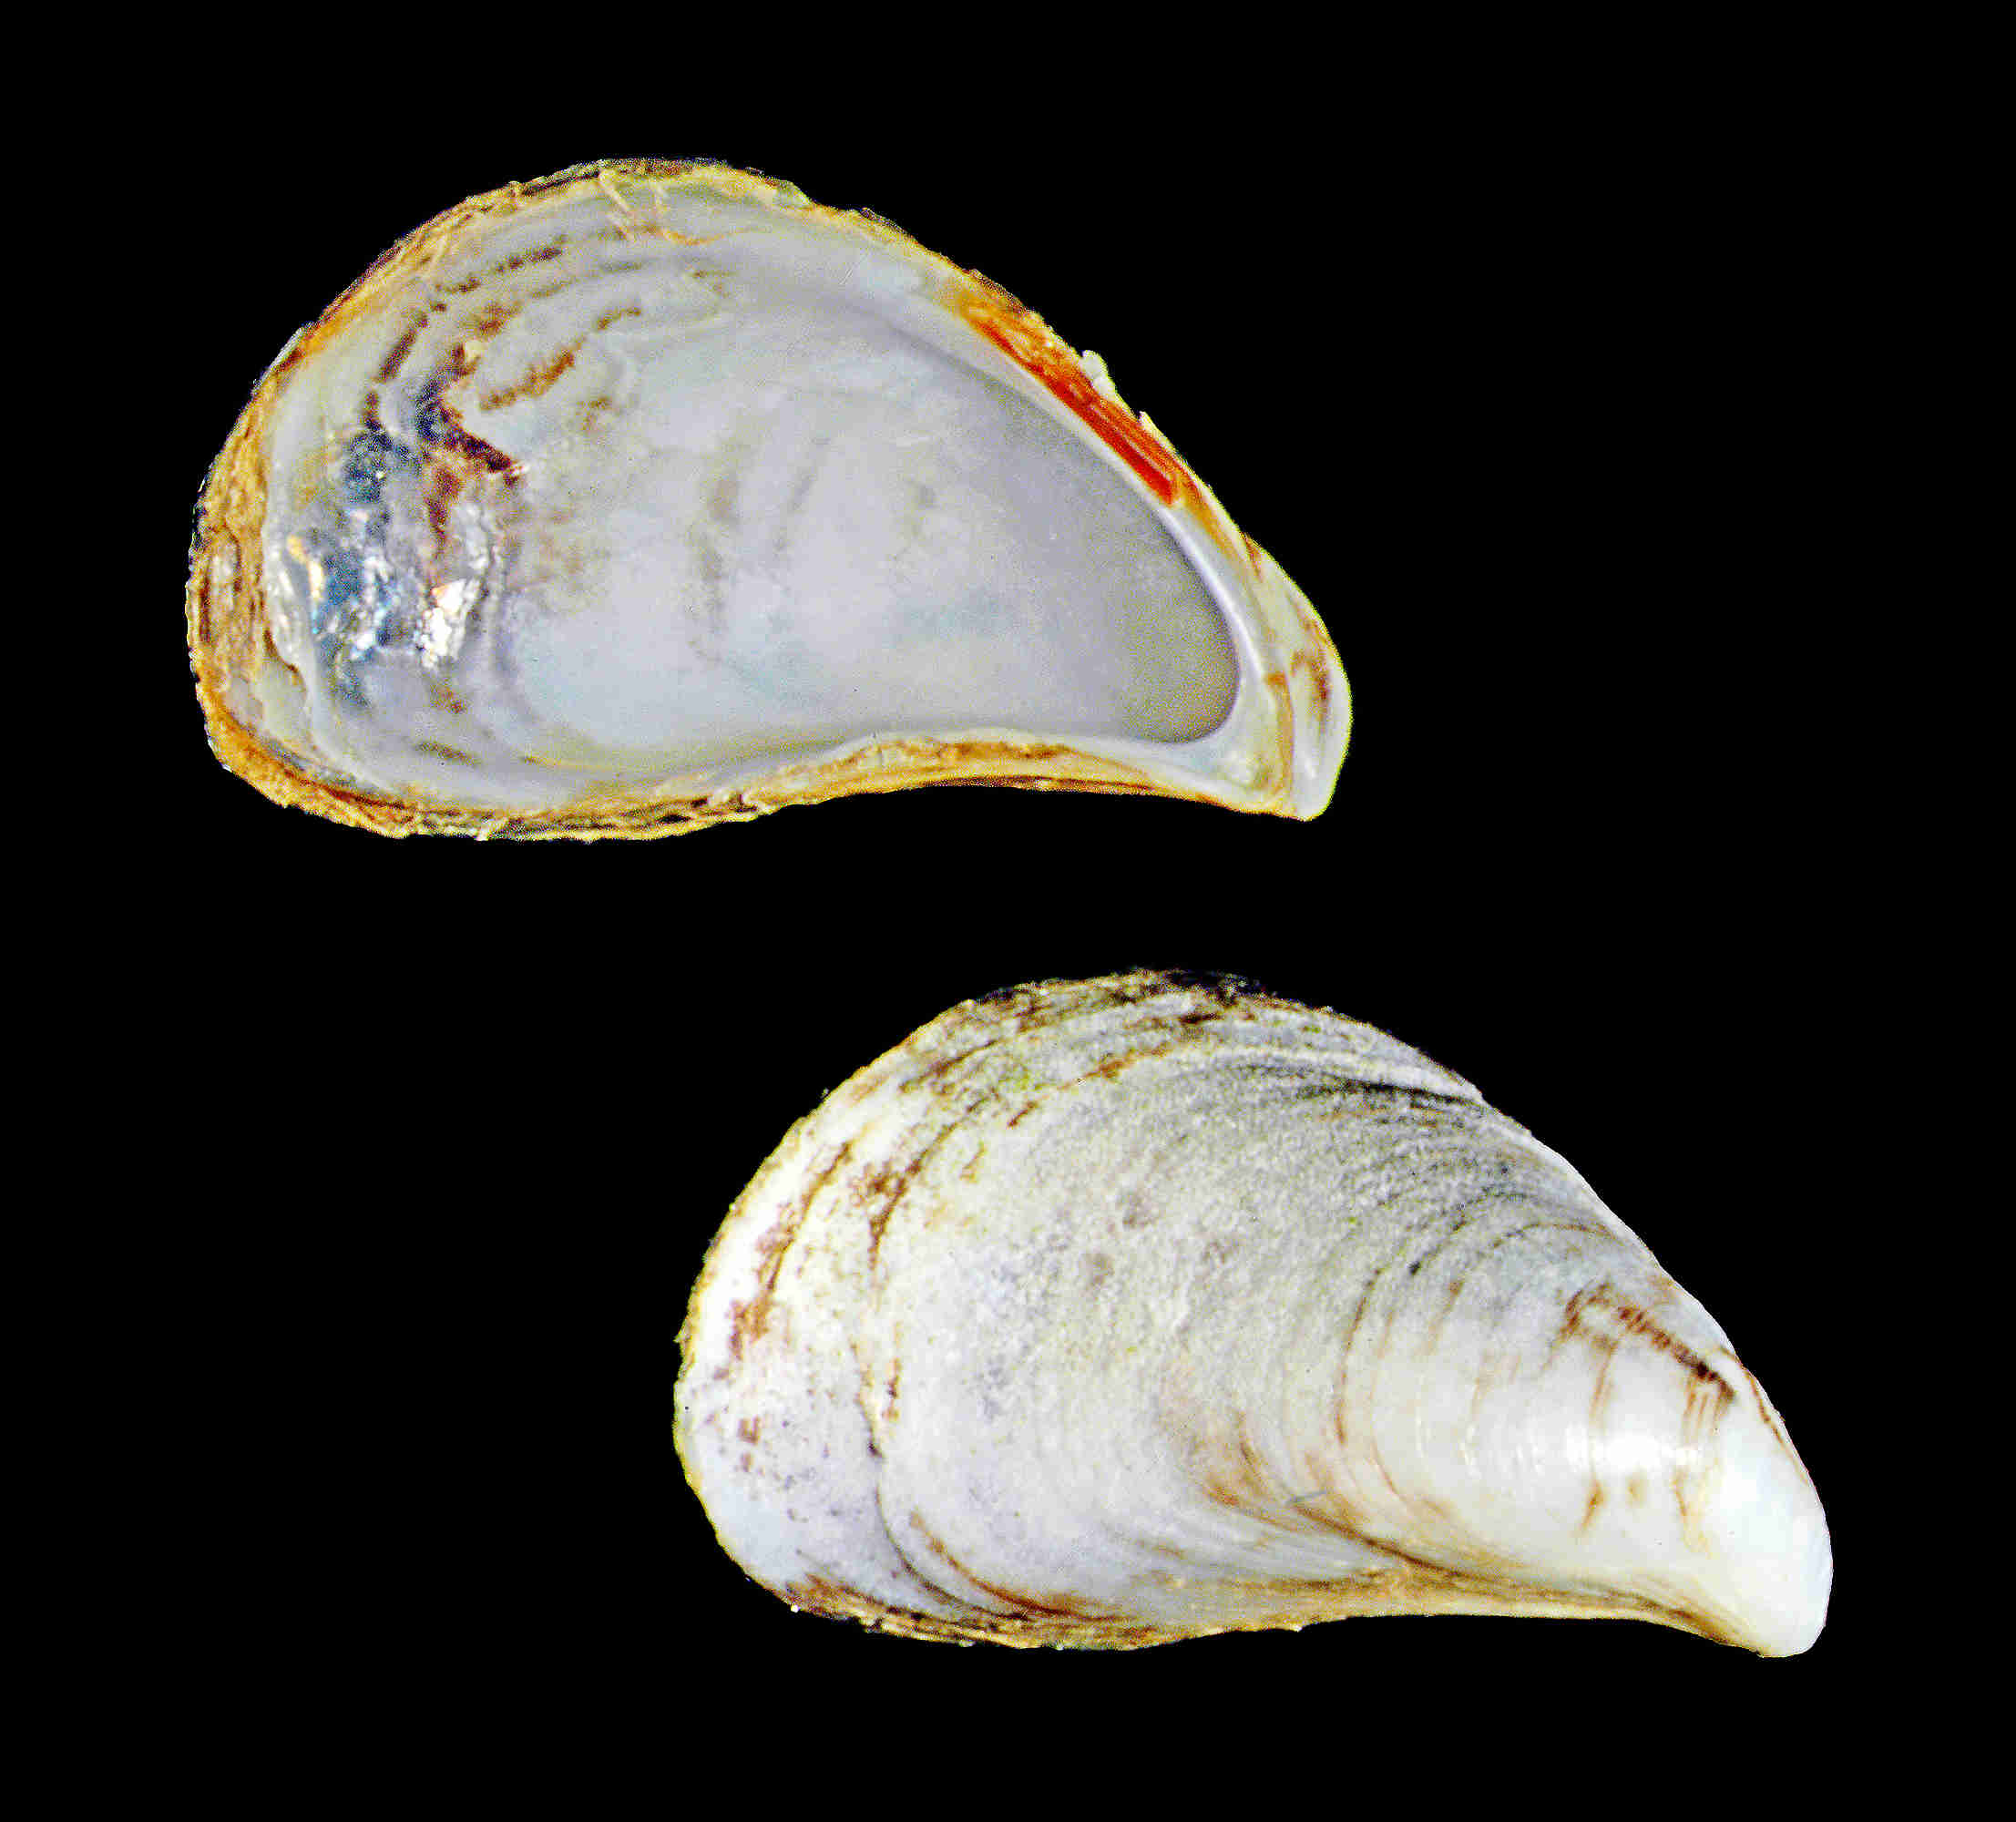 Dark False Mussel